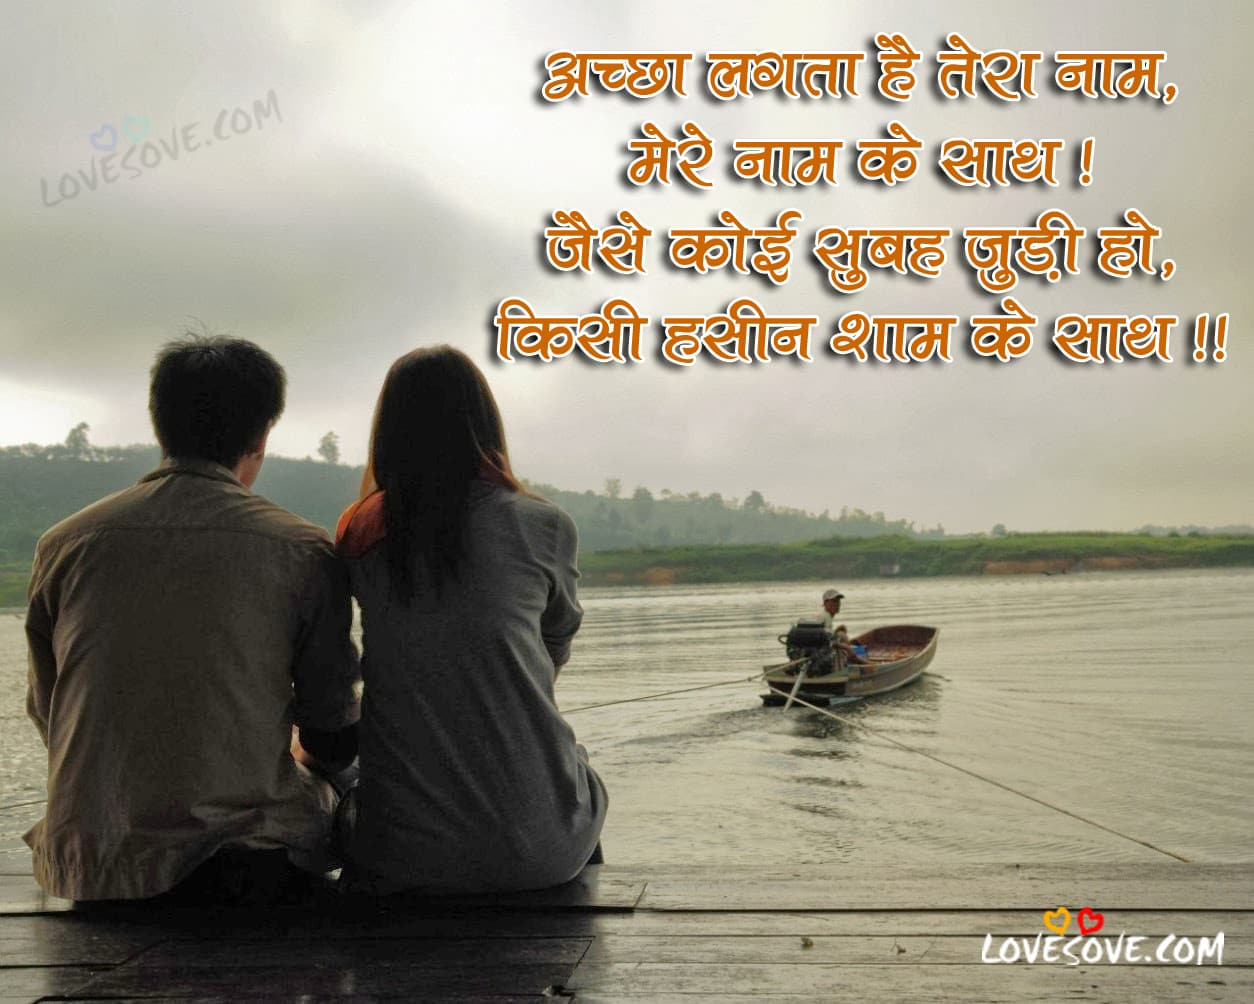 hindi with images latest love shayari in hindi 2017 latest